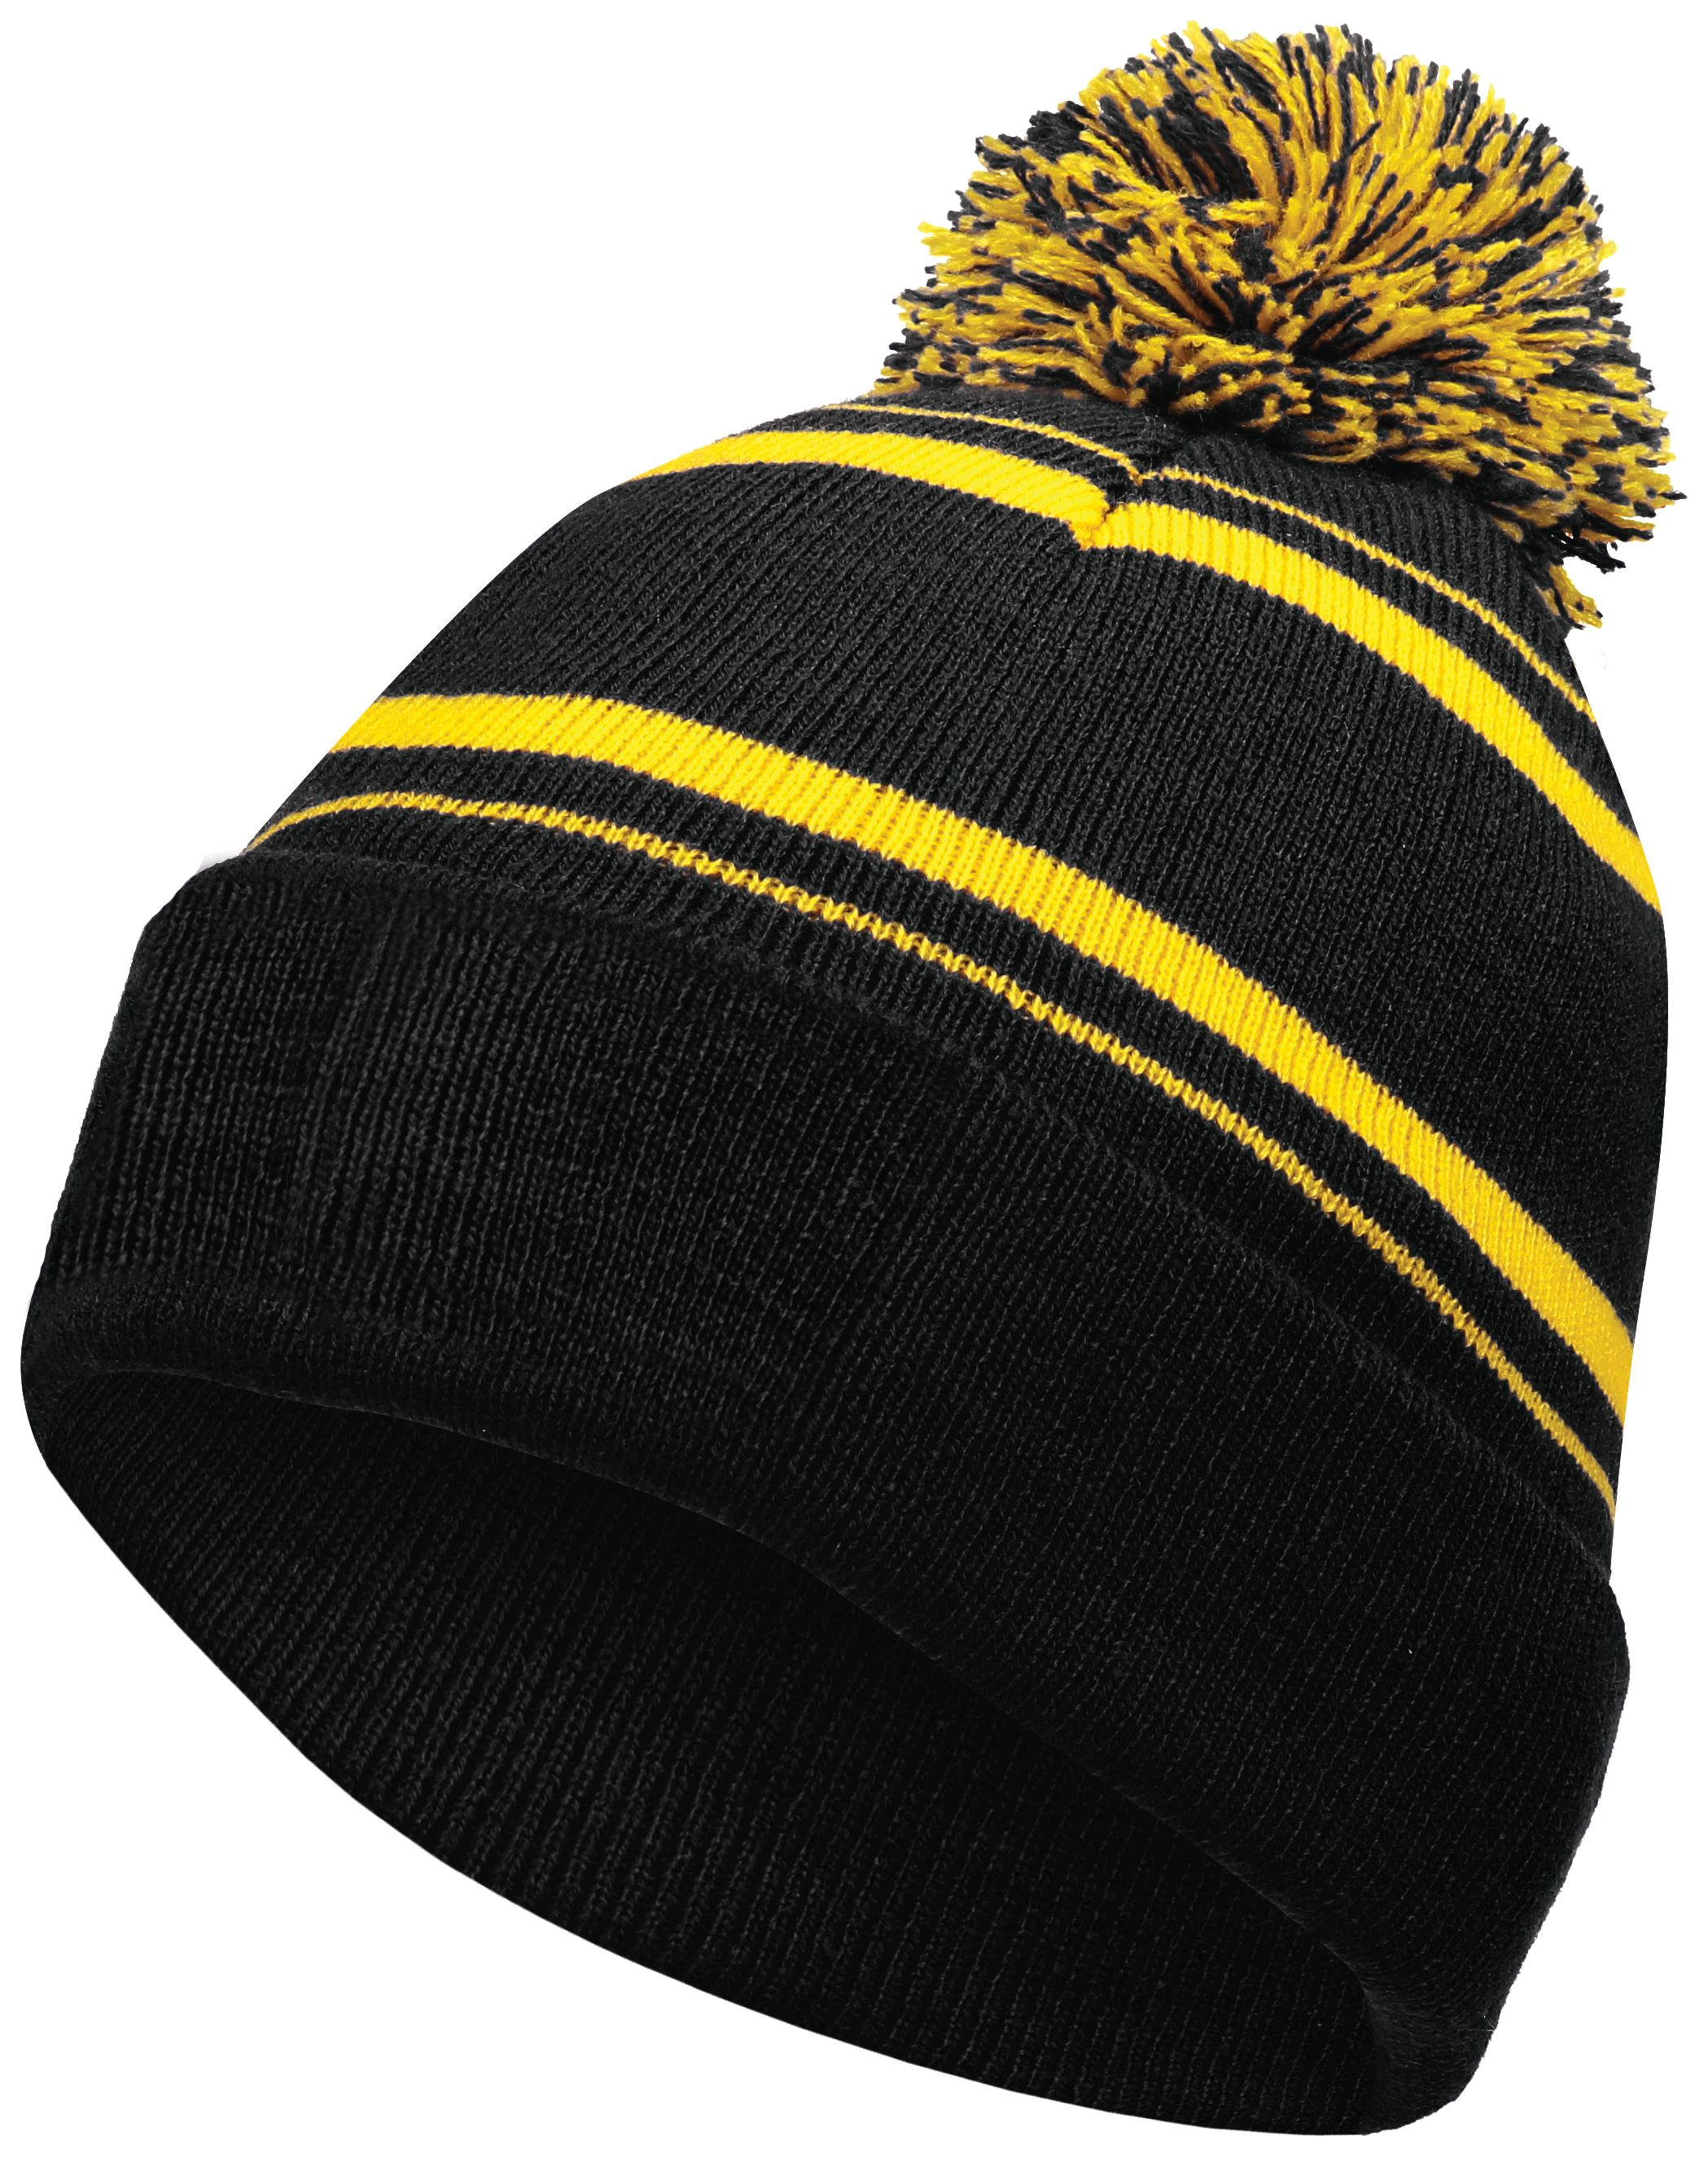 Homecoming Beanie - BLACK/LIGHT GOLD